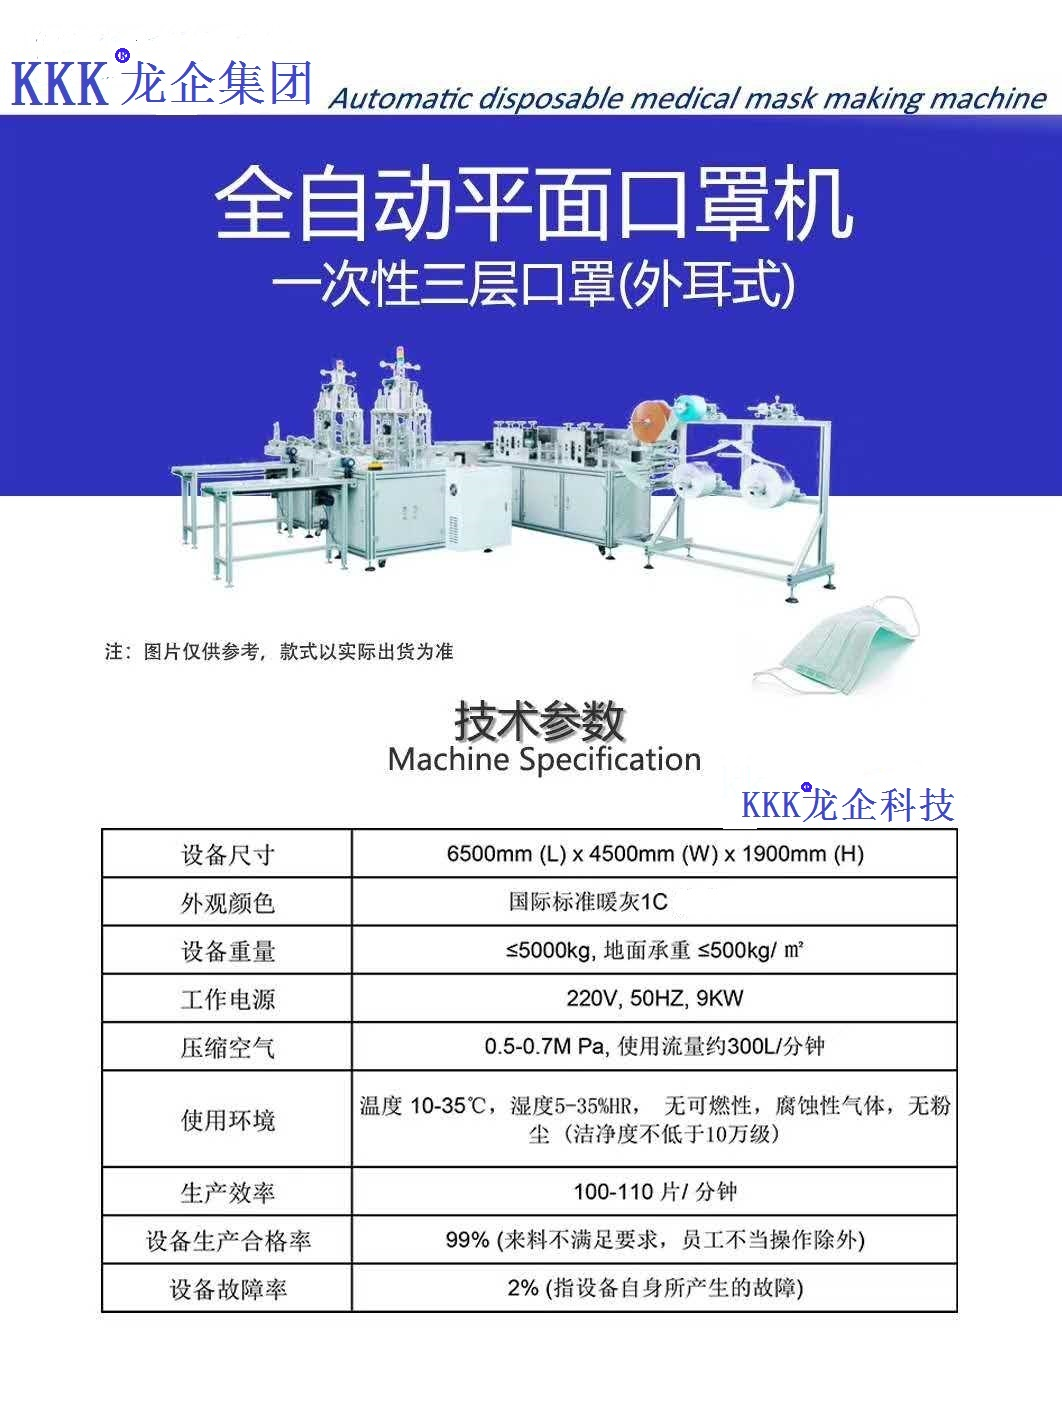 YWK-111kz Automatic disposable medical mask making machine